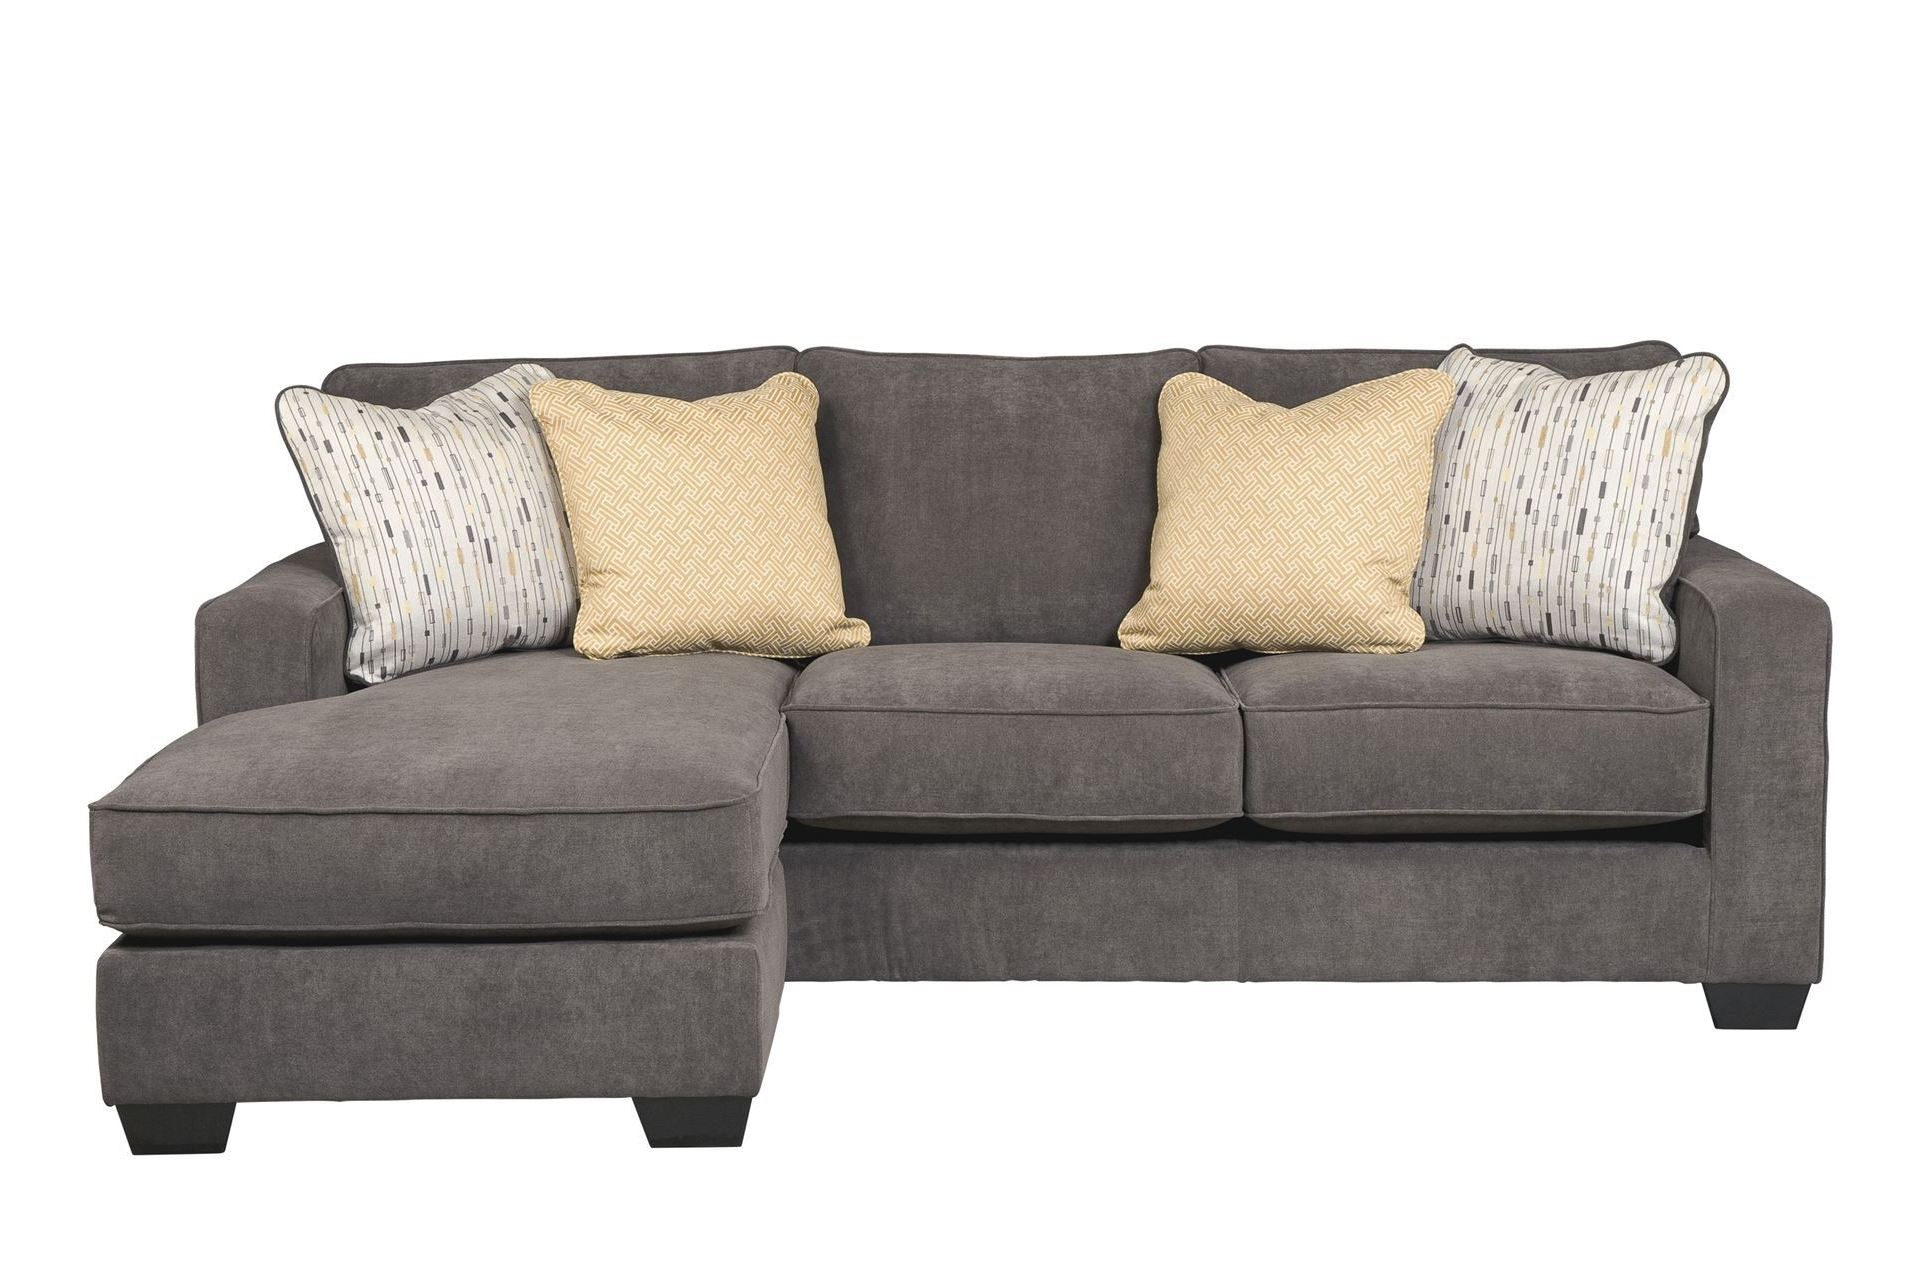 Latest The Ideal Solution For Small Spaces – Sectional With Sleeper Sofa With Regard To Small Loveseats With Chaise (View 7 of 15)